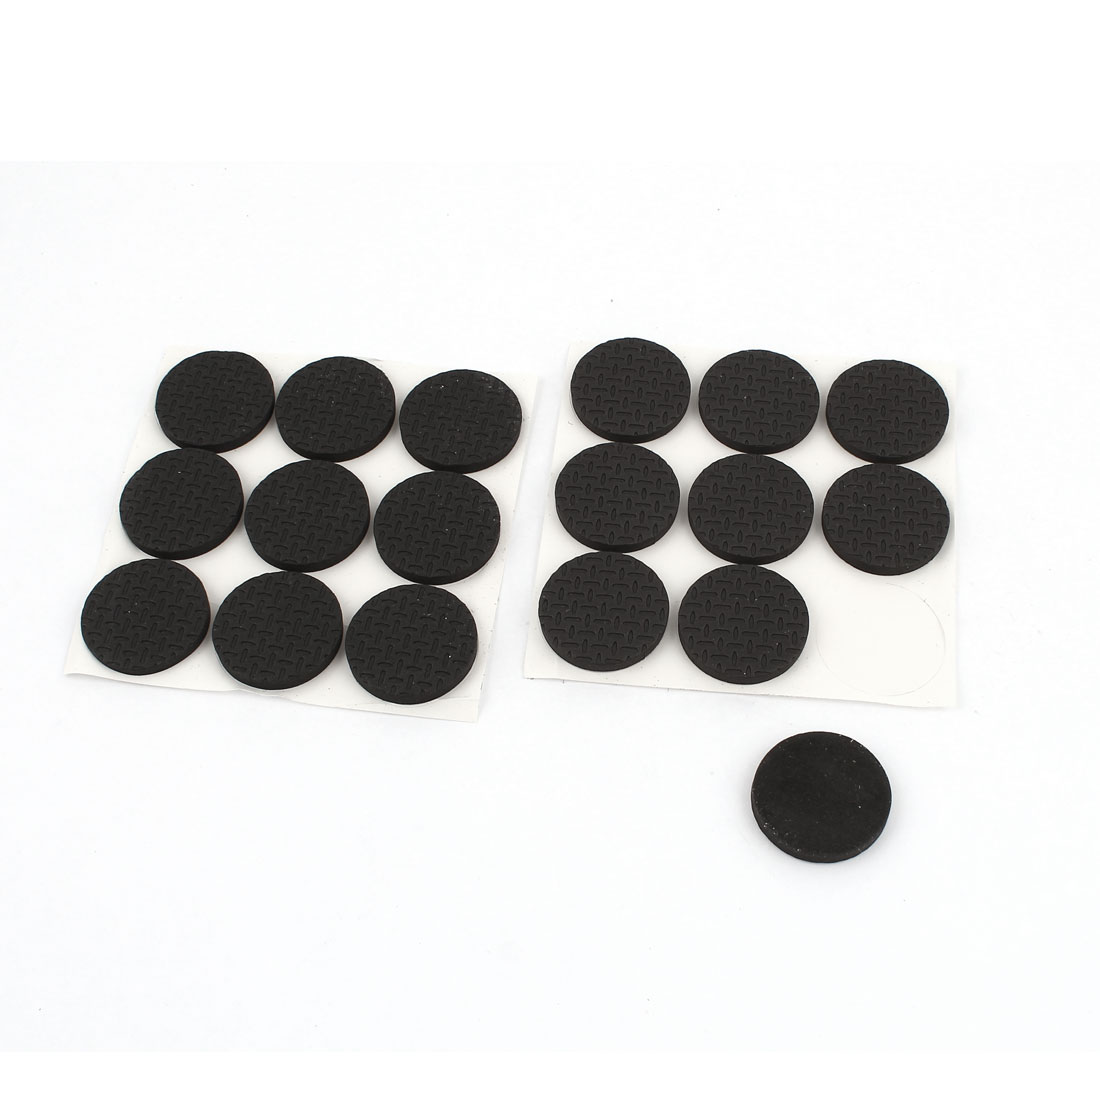 18Pcs Black Foam Self Adhesive Table Chair Furniture Foot Floor Protection Cushion Pad